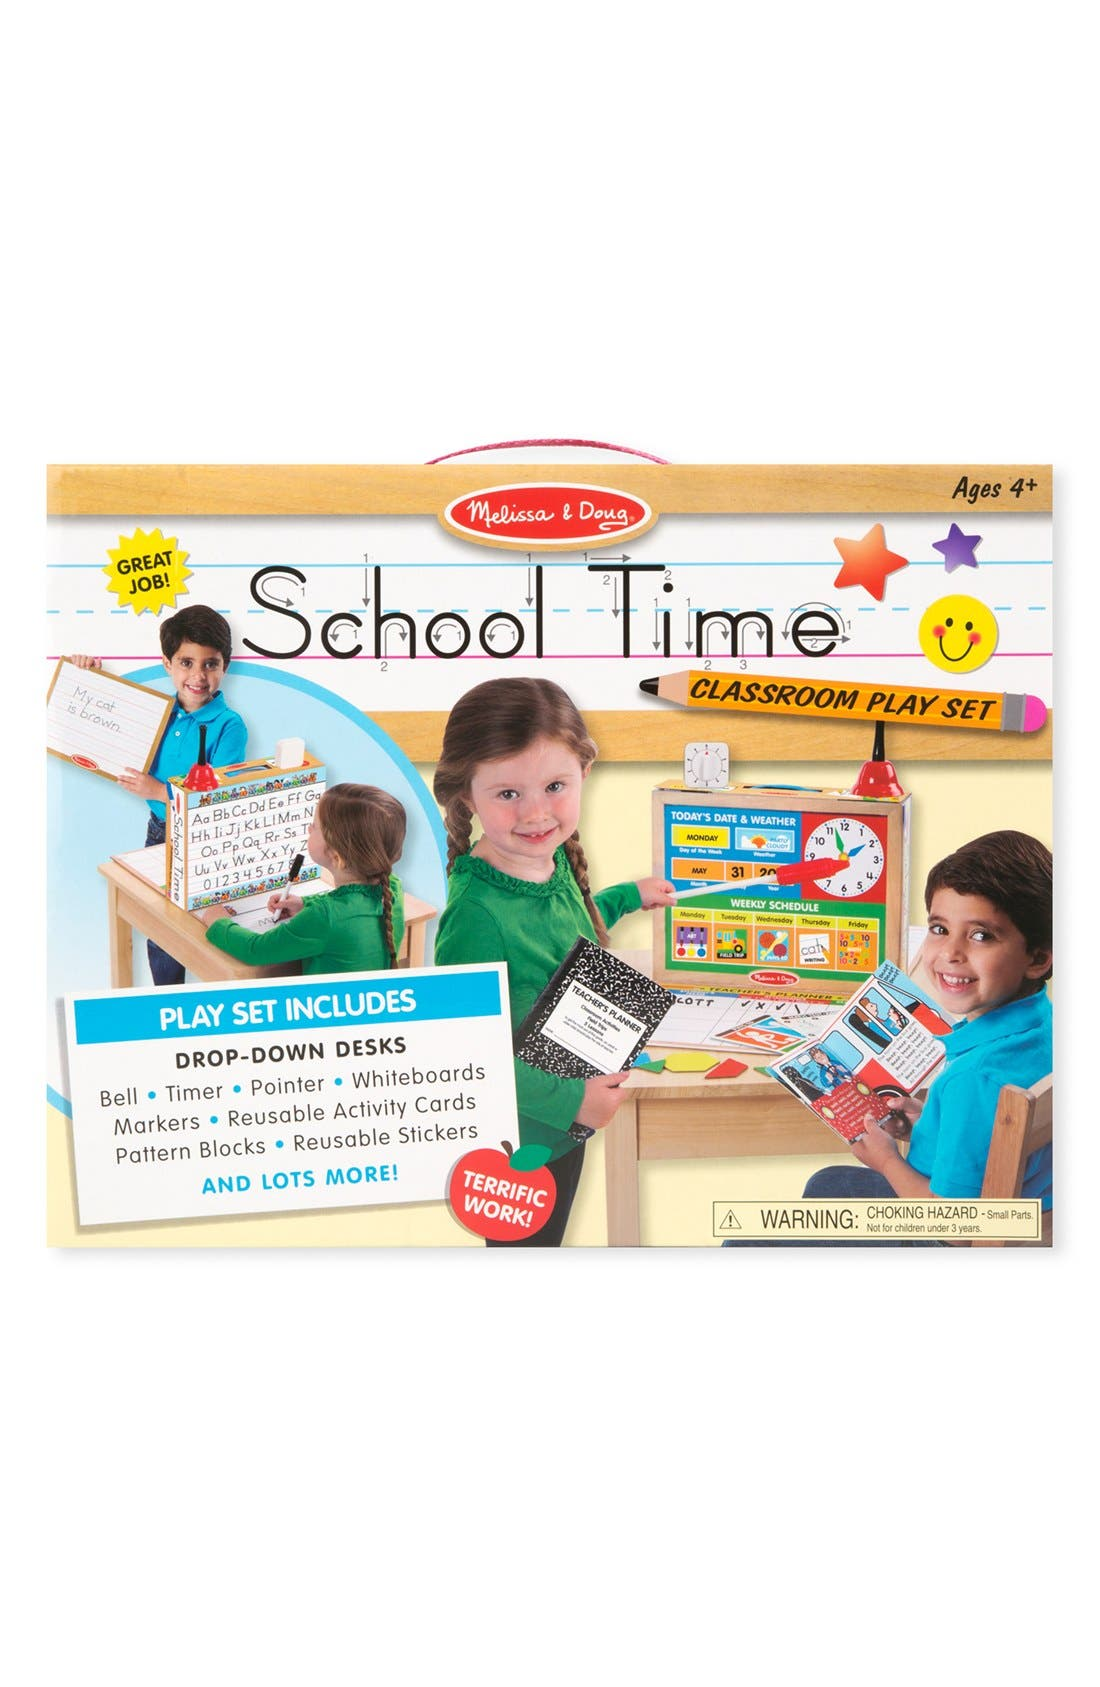 Melissa & Doug 'School Time!' Classroom Play Set